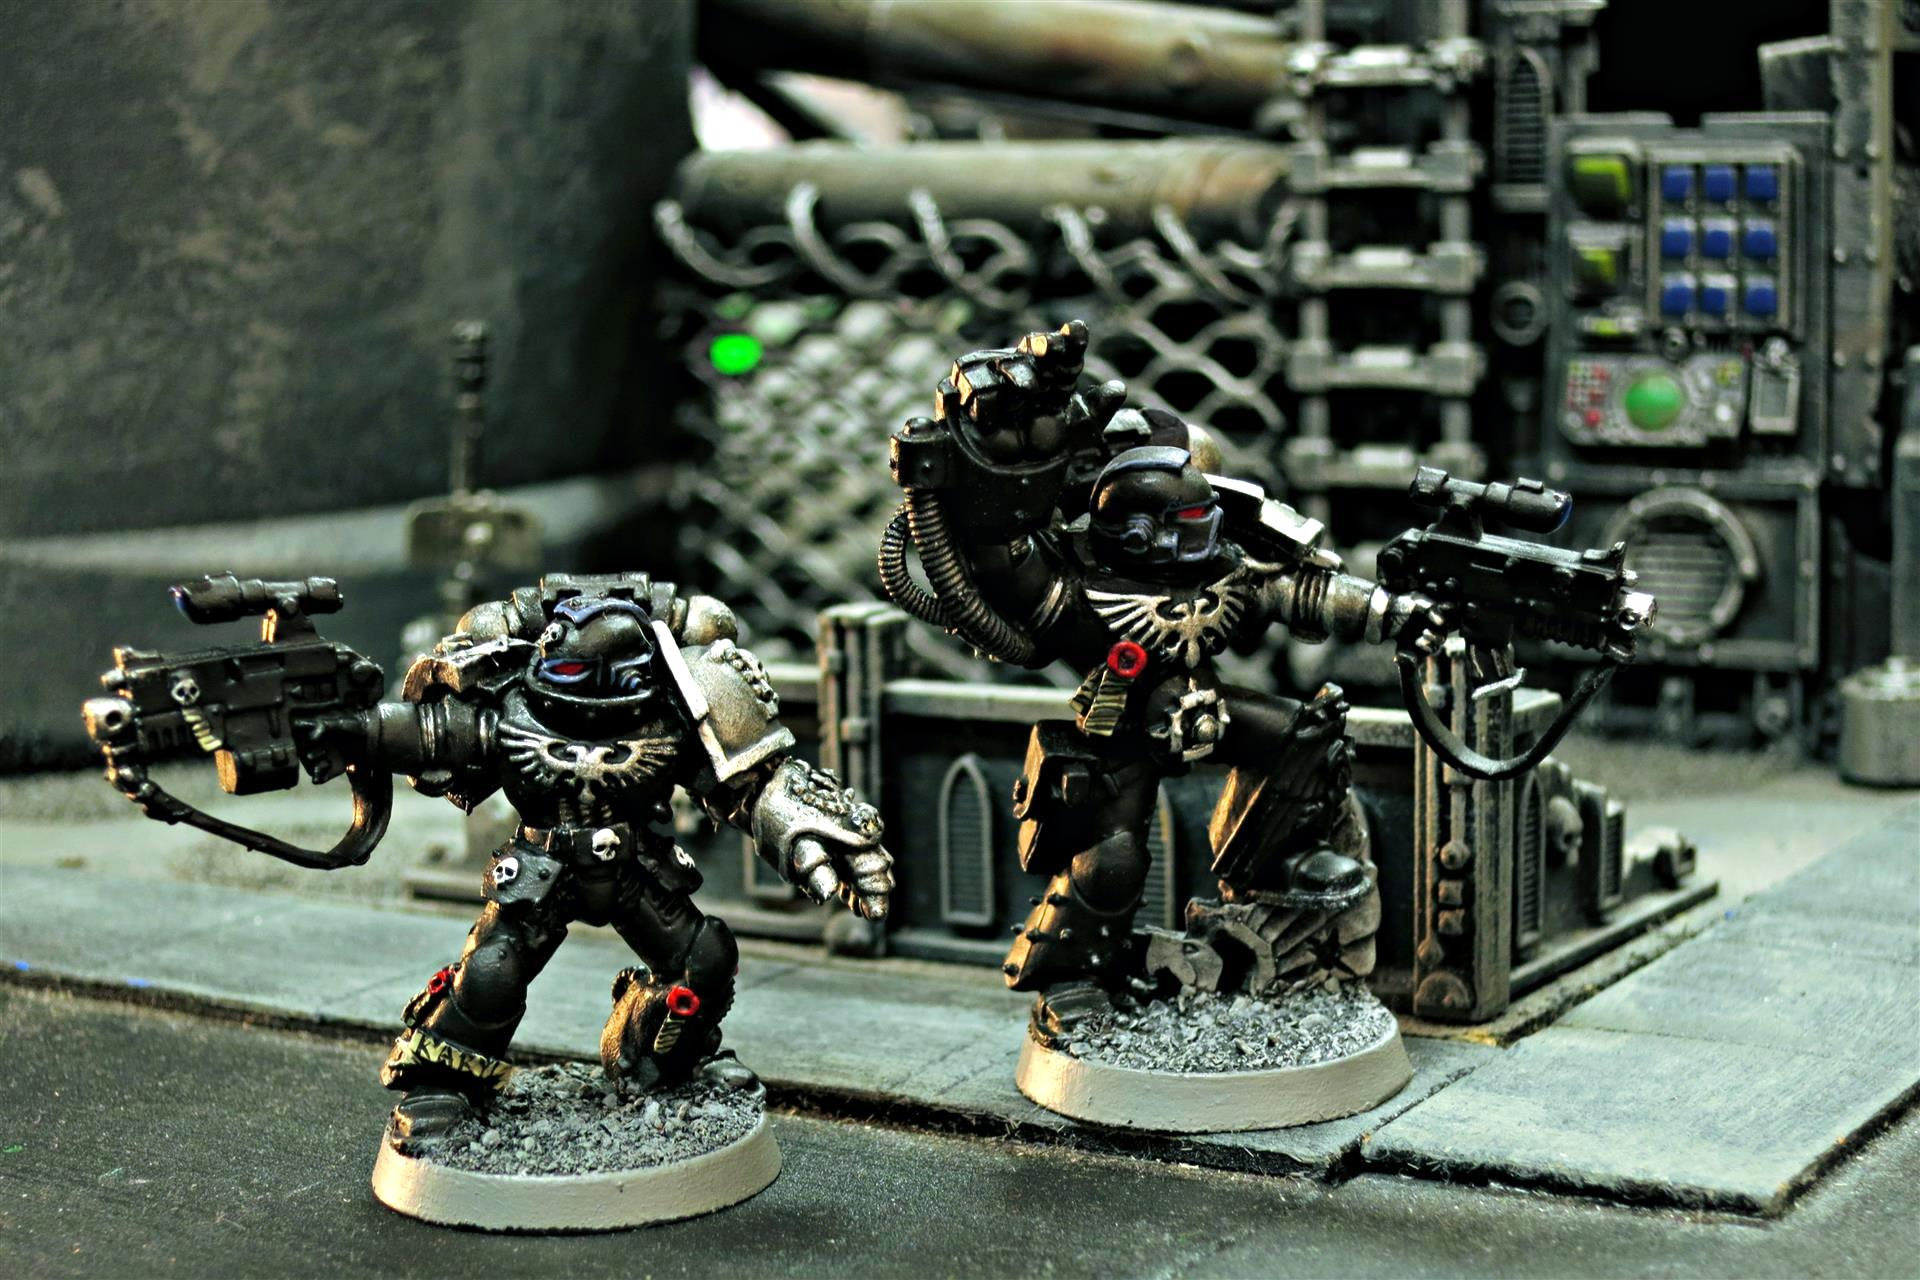 Aquila, Black Shield, Black Shields, Deathwatch, Deathwatch Blackshields, Deathwatch Kill Team, Inquisition, Ordos Xenos, Power Fist, Sgt, Space Marines